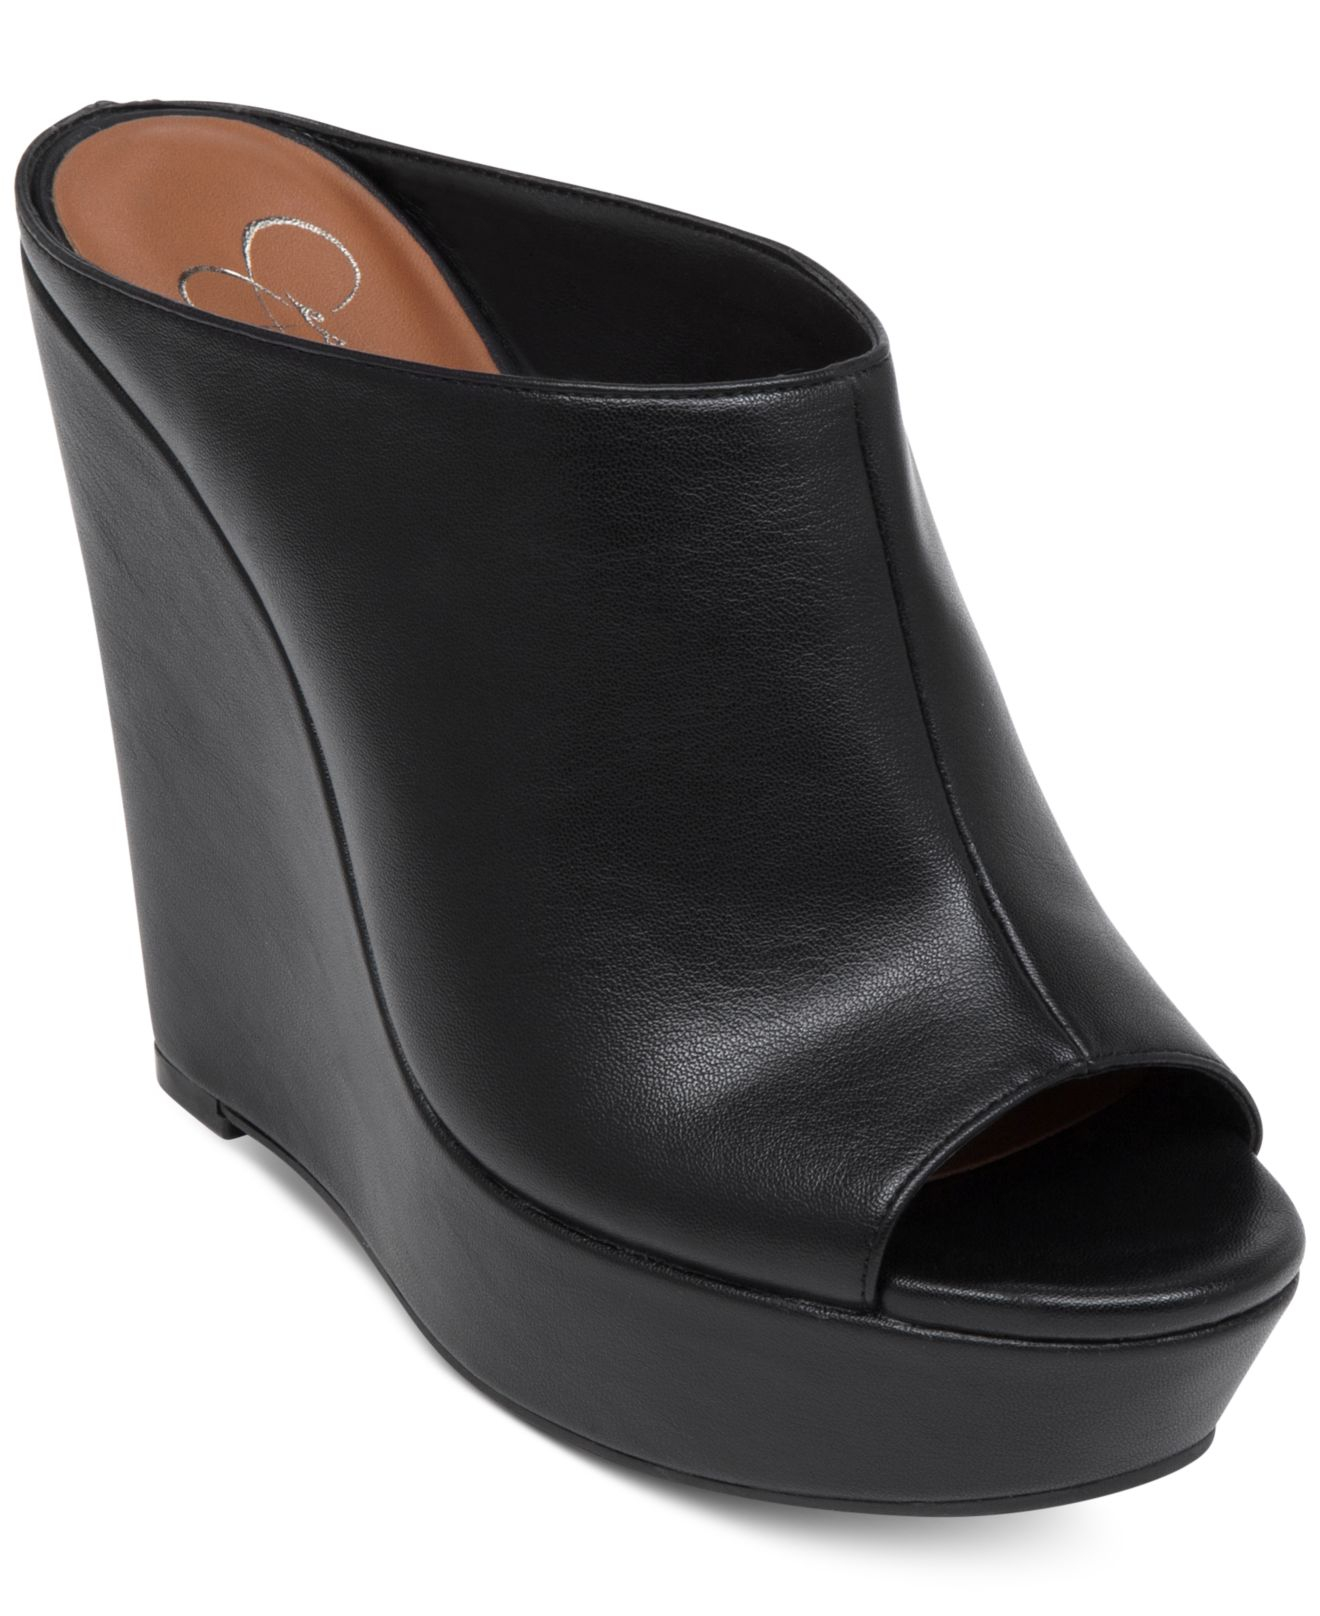 Lyst Jessica Simpson Lovell Platform Wedge Sandals In Black